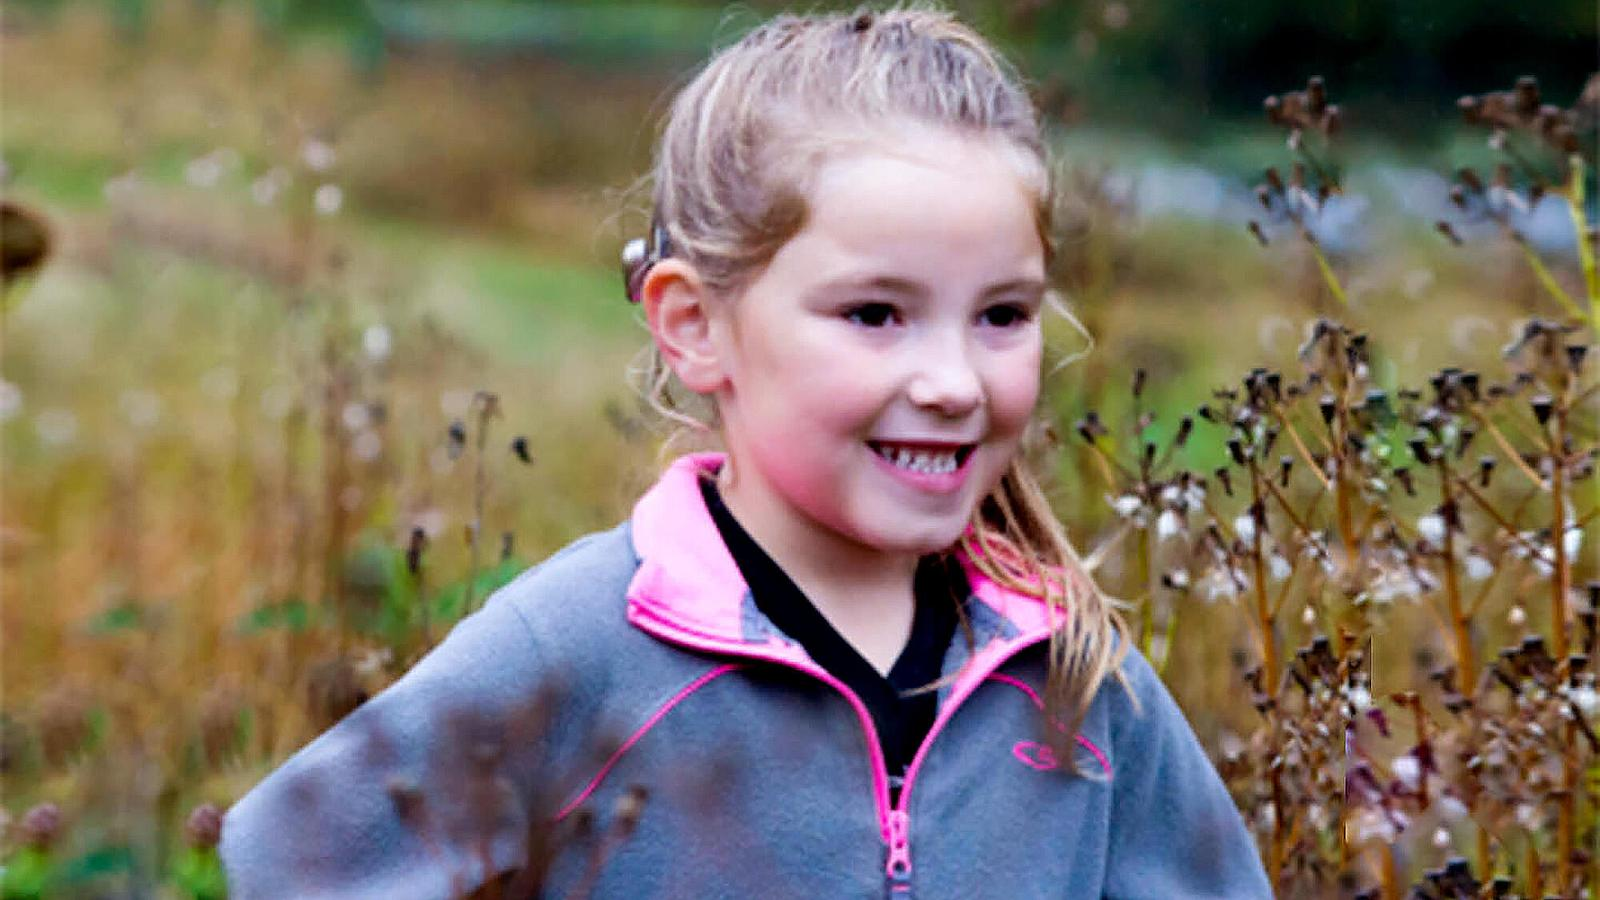 Baha recipient Isabella plays outdoors